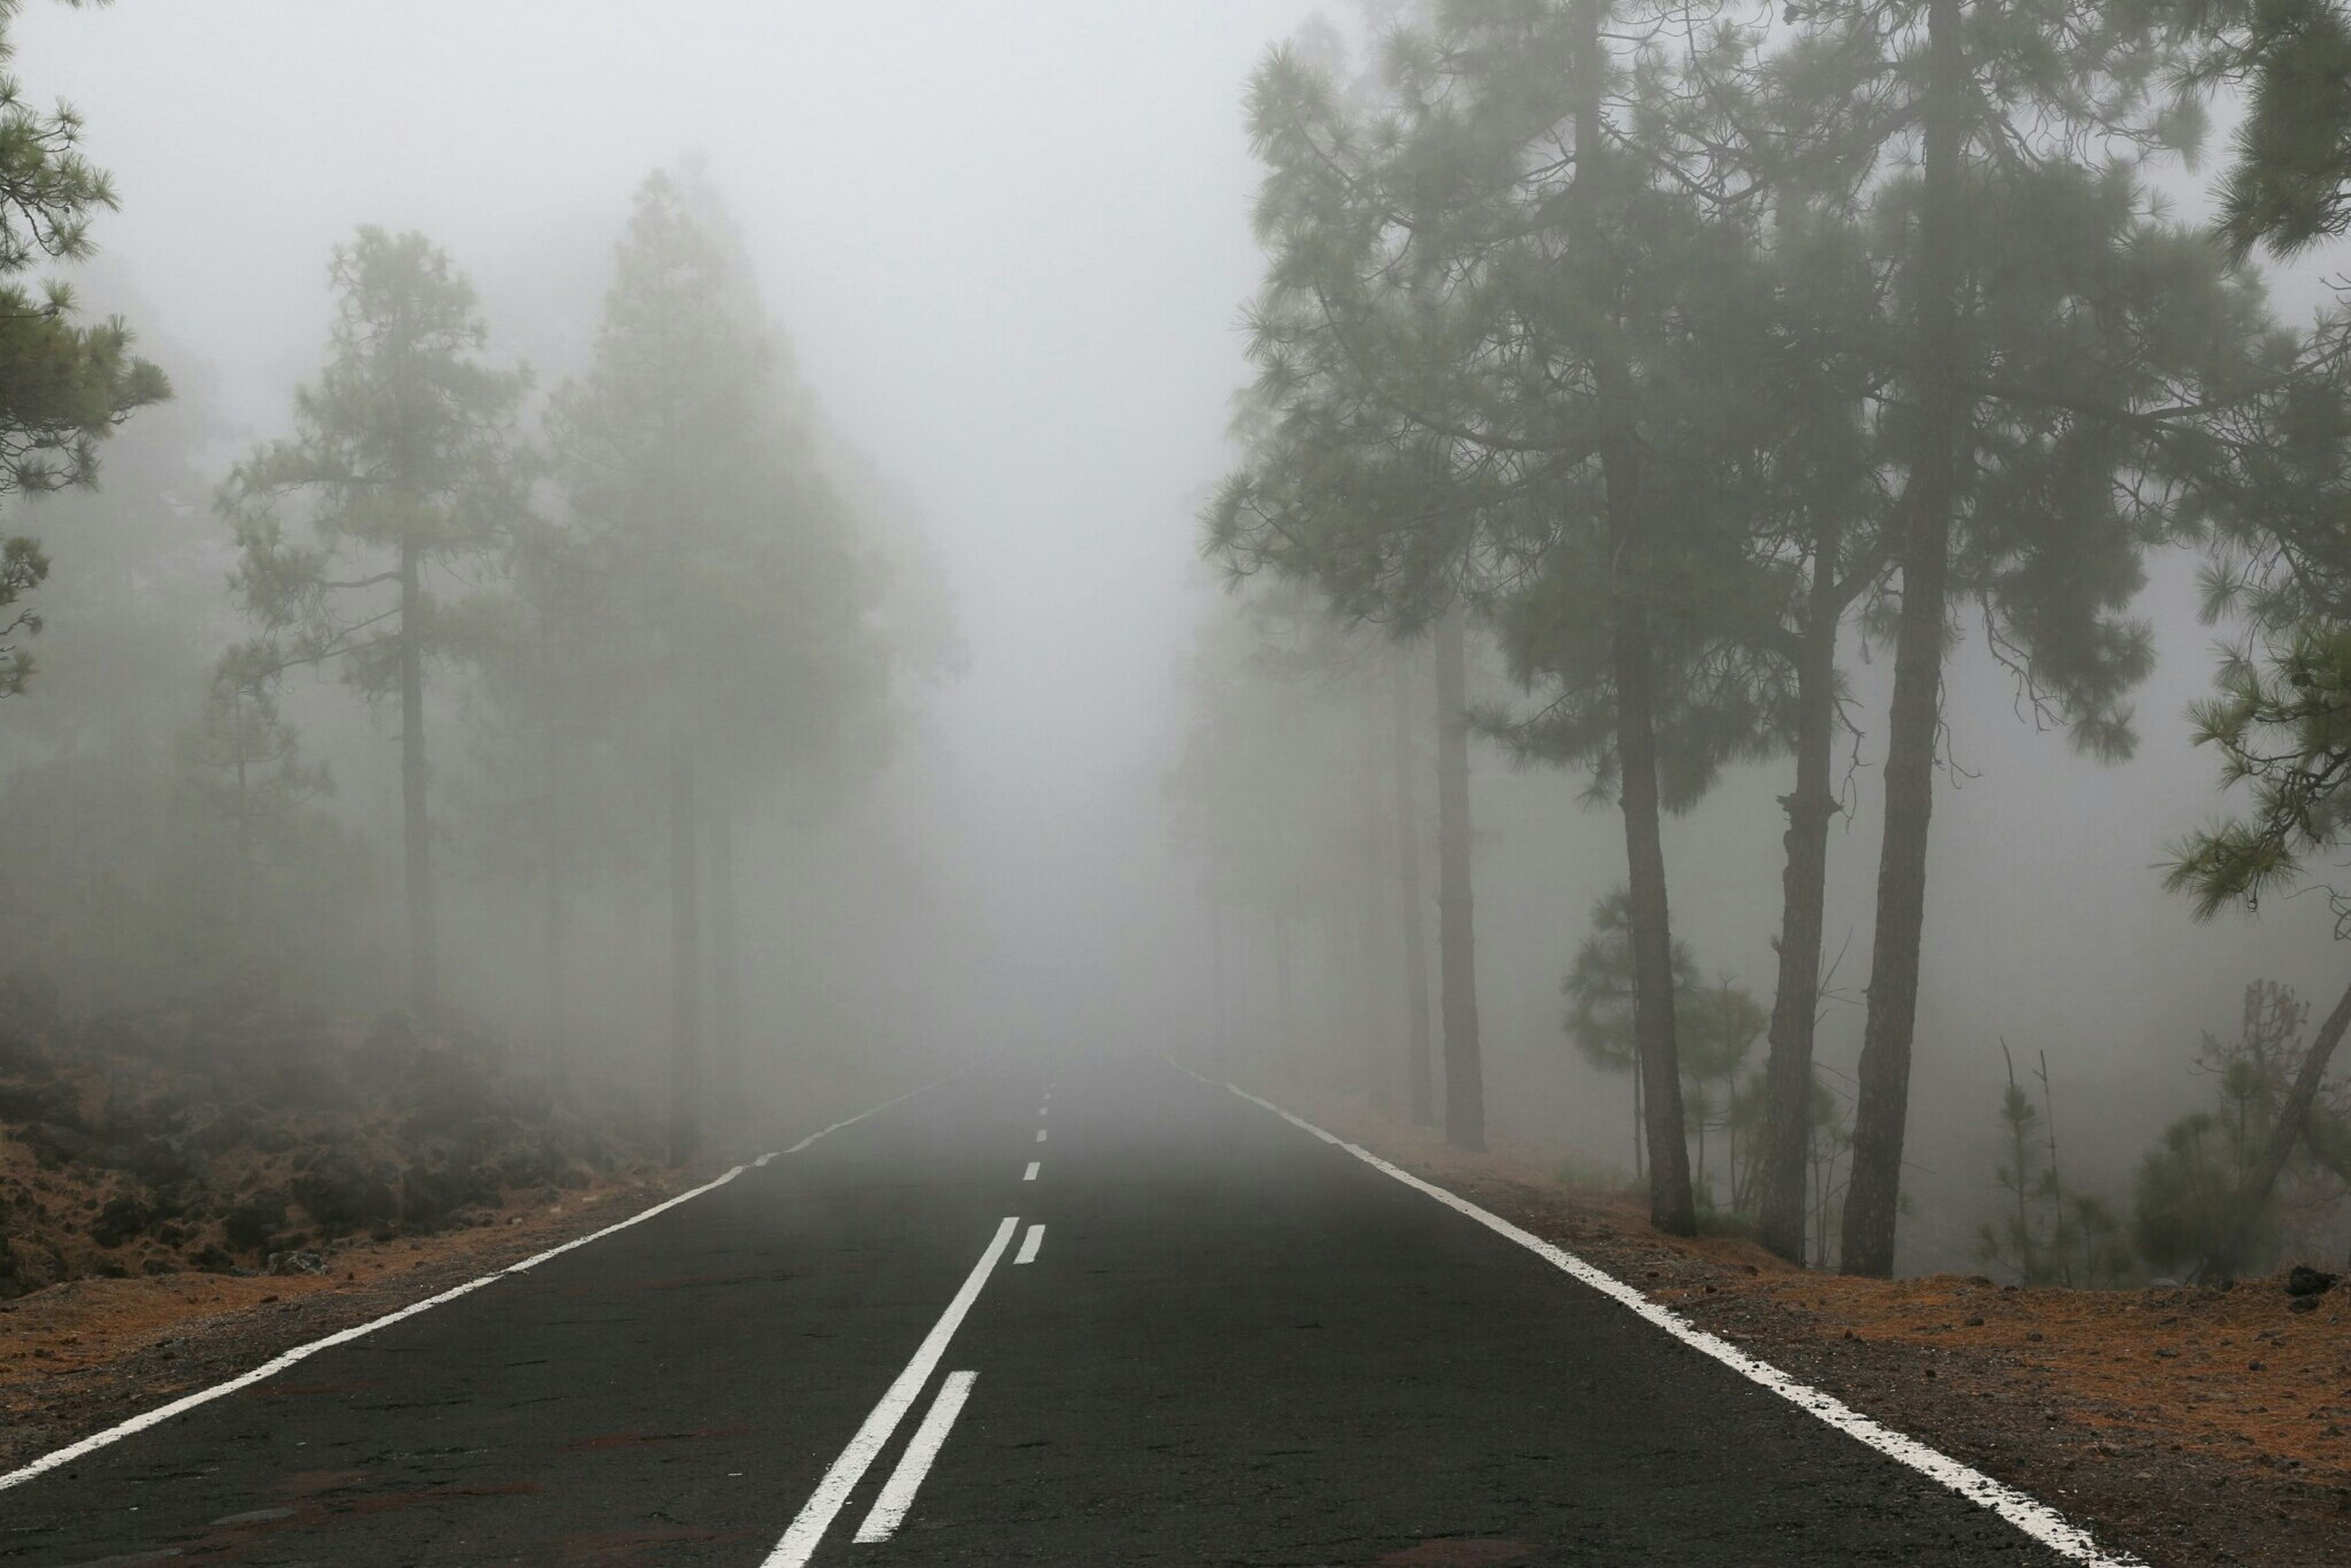 the way forward, transportation, diminishing perspective, vanishing point, road, tree, fog, empty road, tranquility, road marking, tranquil scene, country road, nature, foggy, empty, scenics, non-urban scene, sky, beauty in nature, landscape